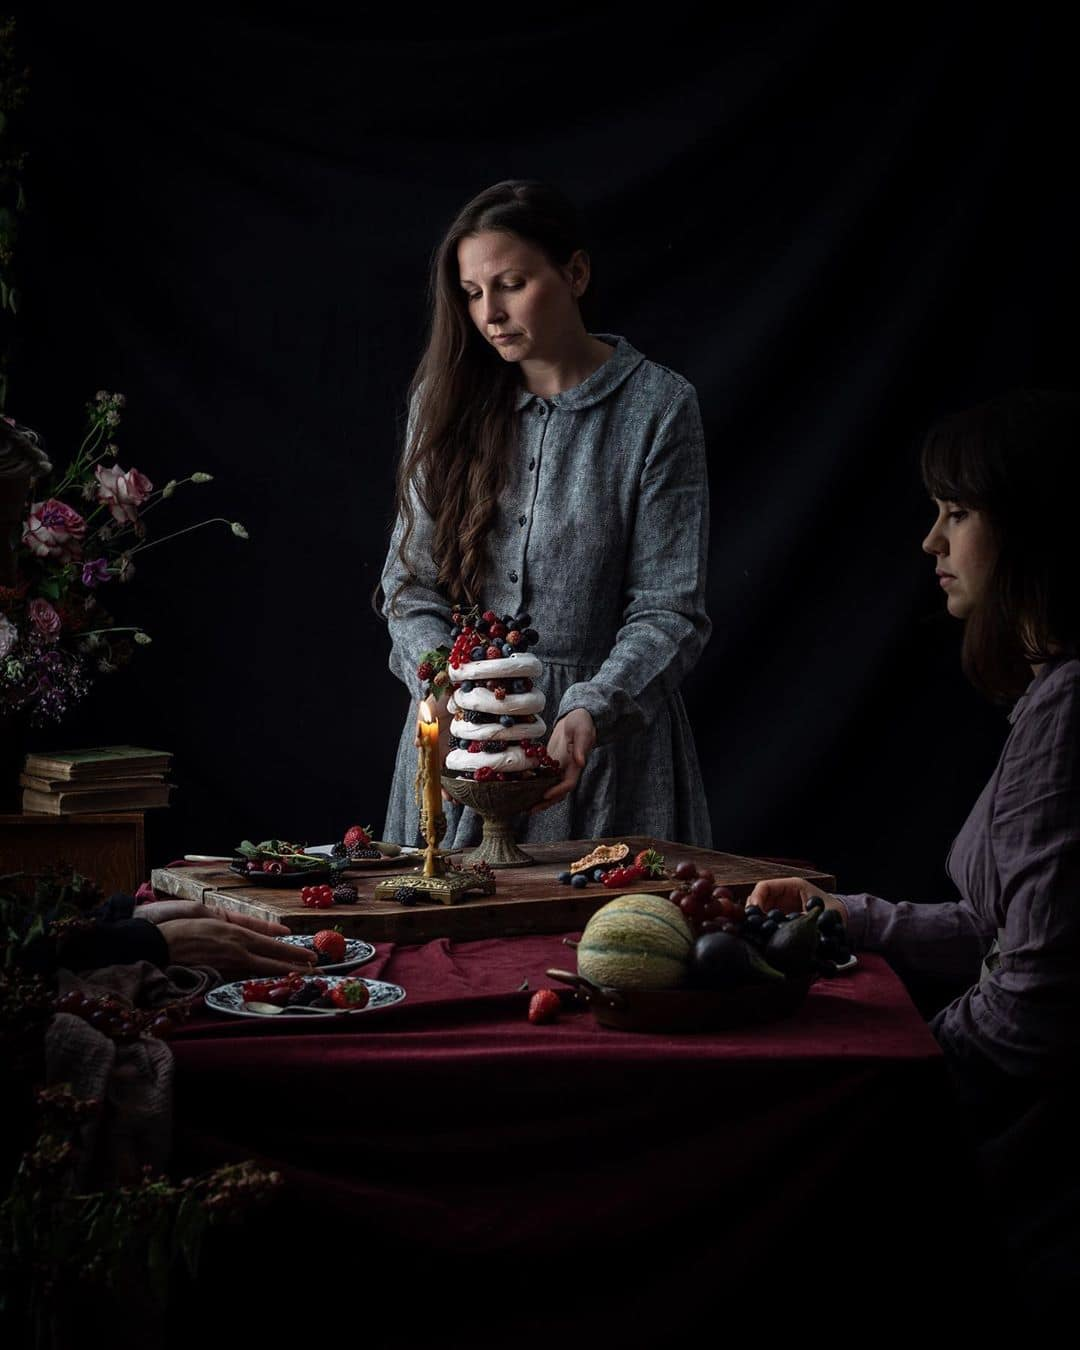 Delicious Recipes and Artistic Food Photography by Aimee Twigger